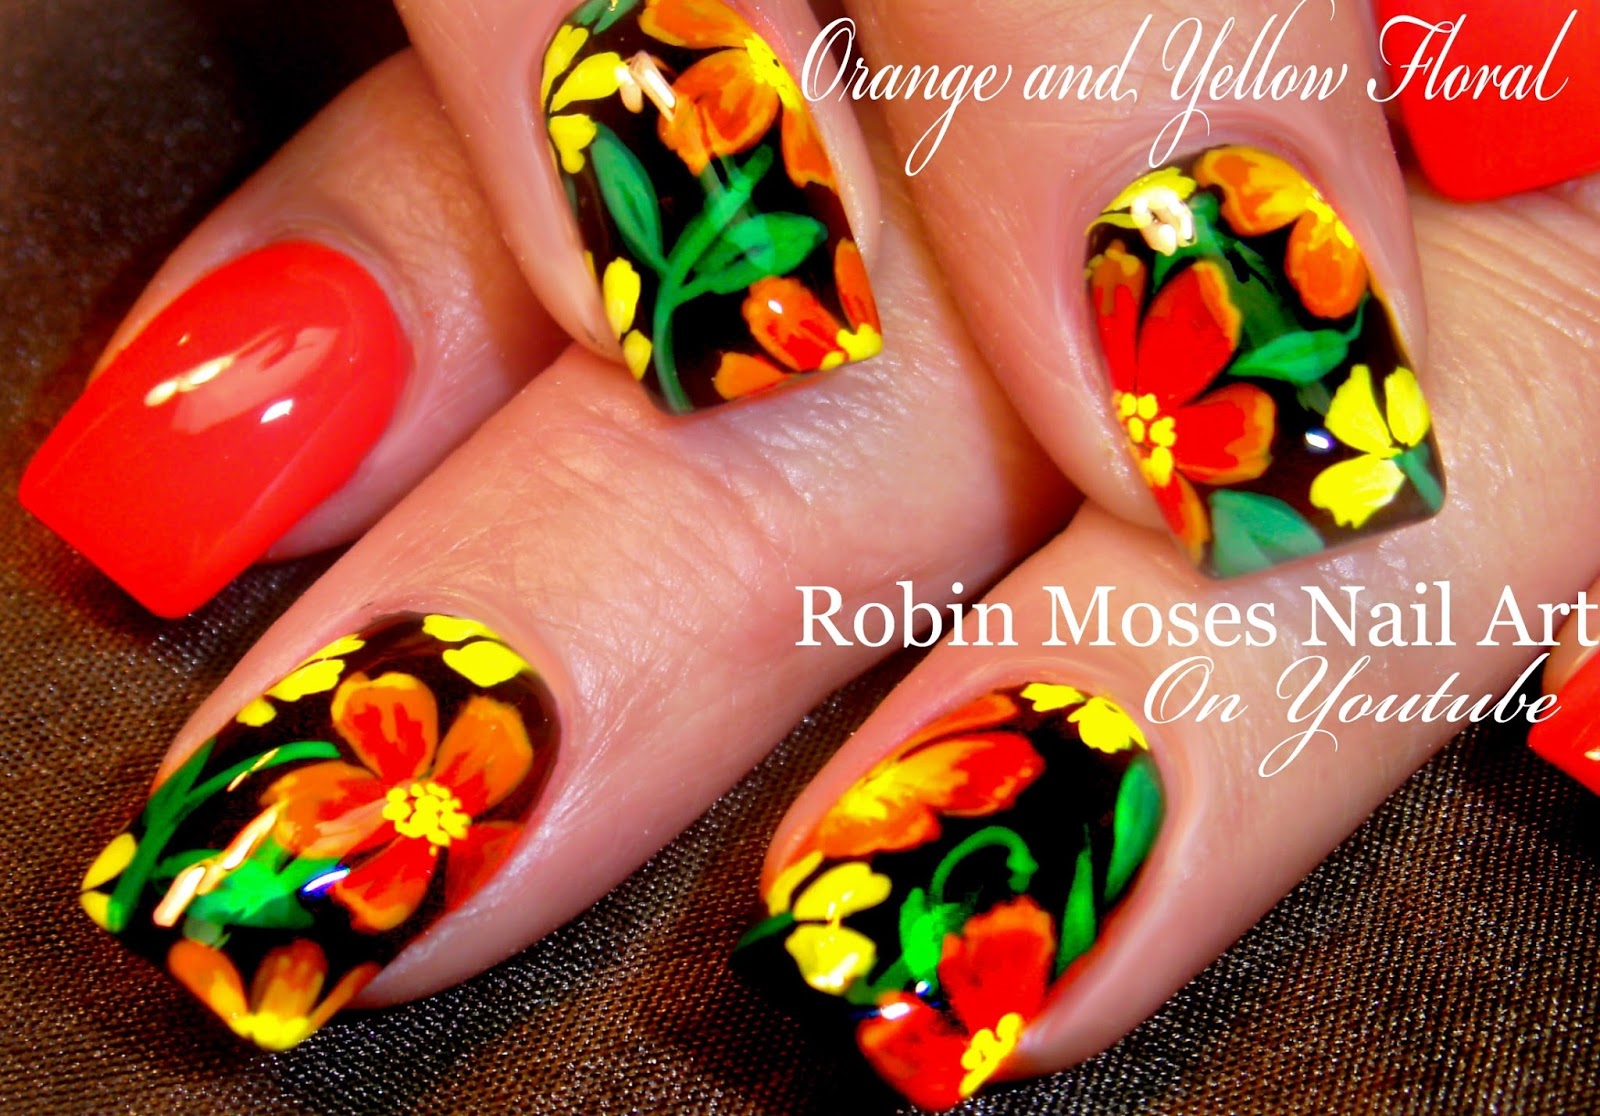 Robin Moses Nail Art: Tropical Nails with Essie Sunshine ...